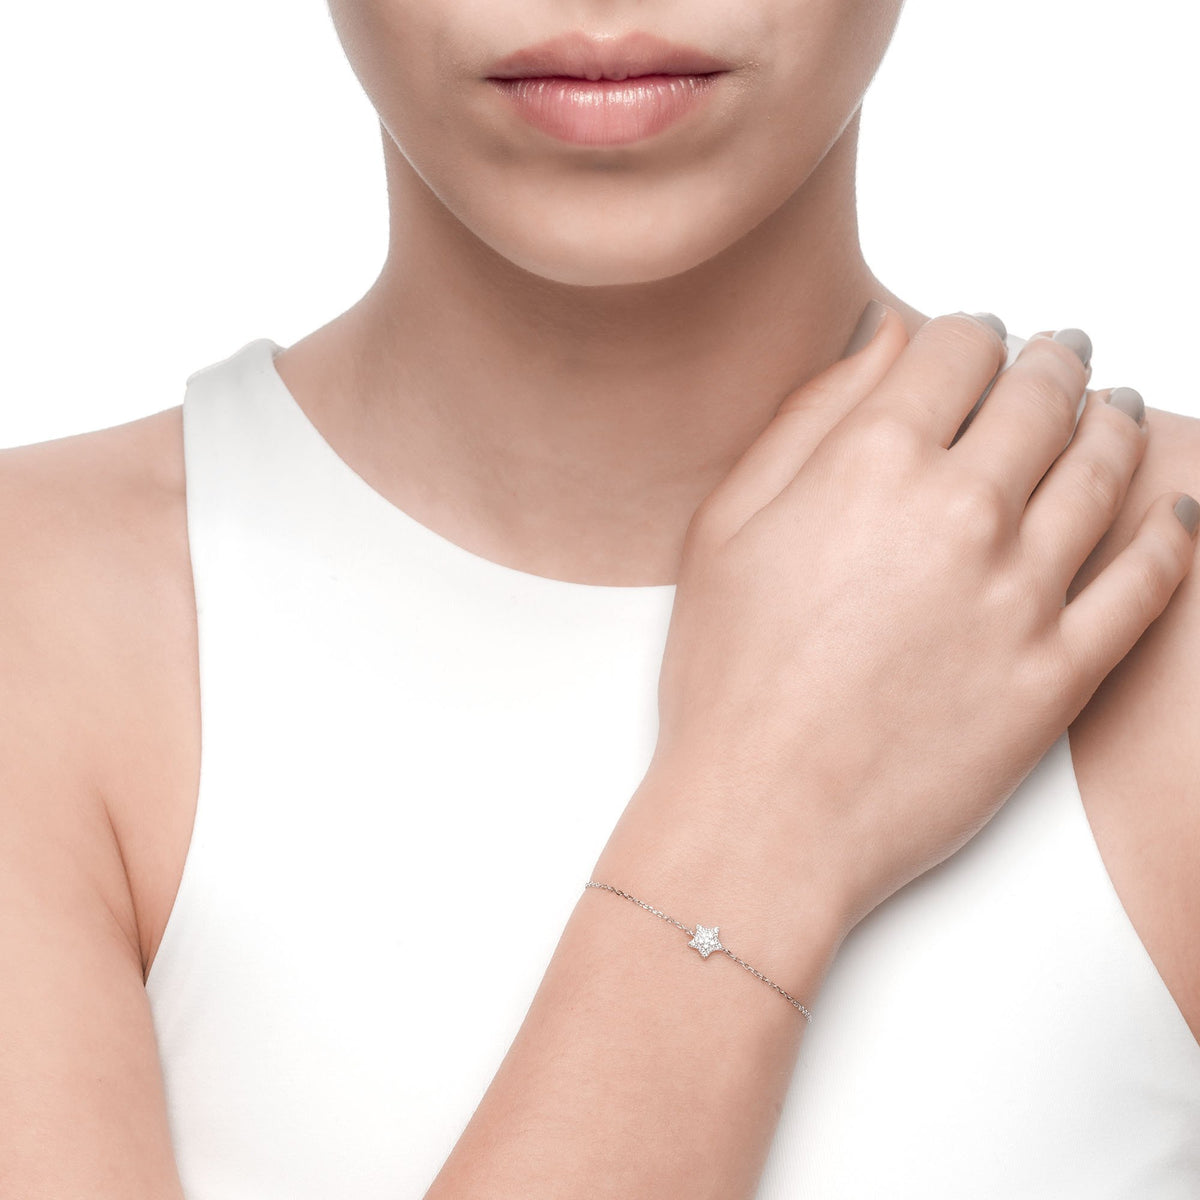 Ferentina | Marshmallow Bracelet | 925 Silver | White CZ | Rhodium Plated